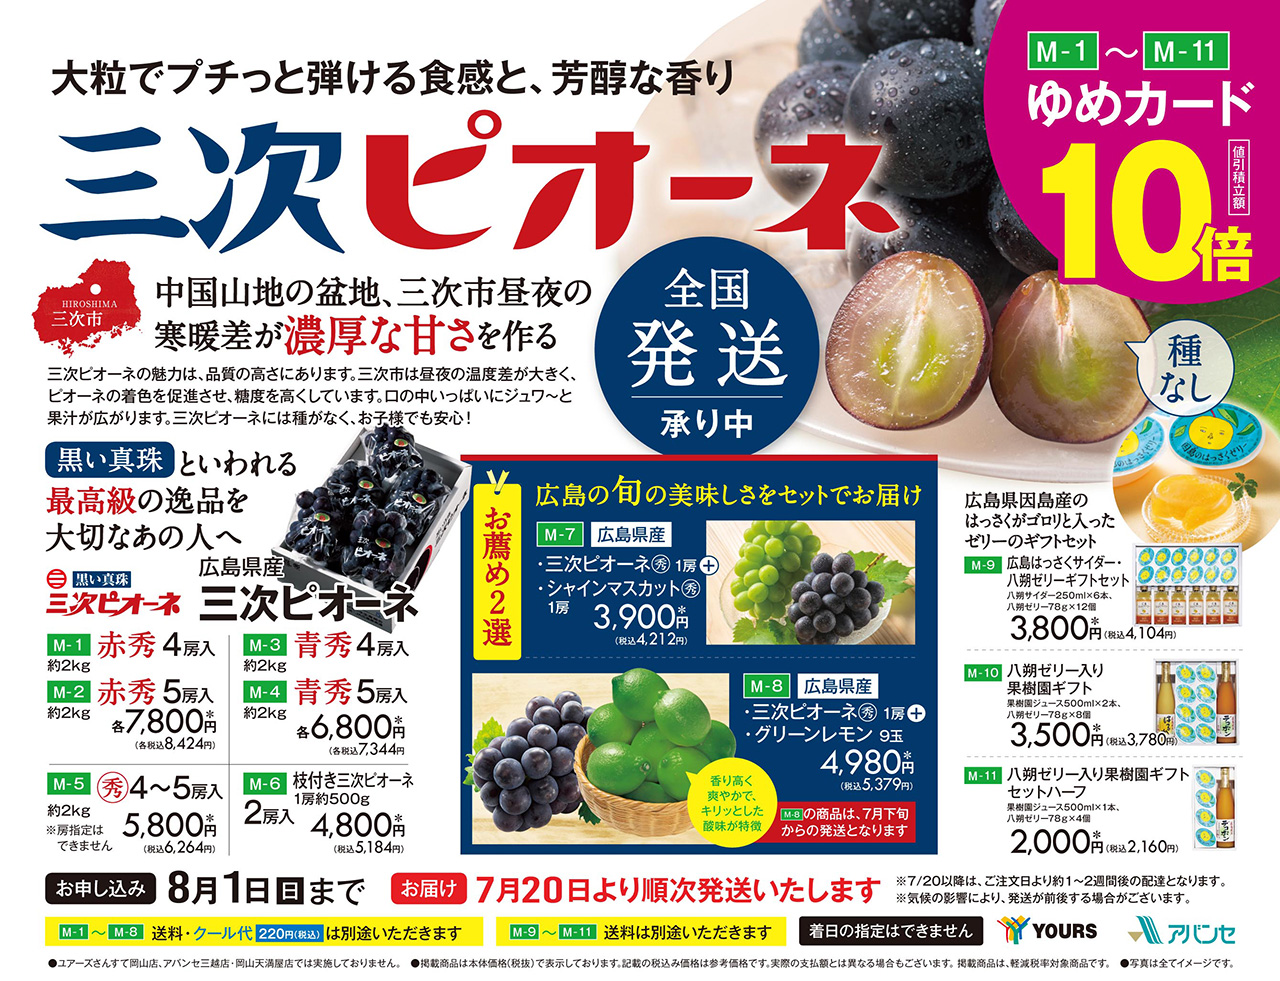 https://aa241w096g.smartrelease.jp/topics/images/210614pione_page.jpg